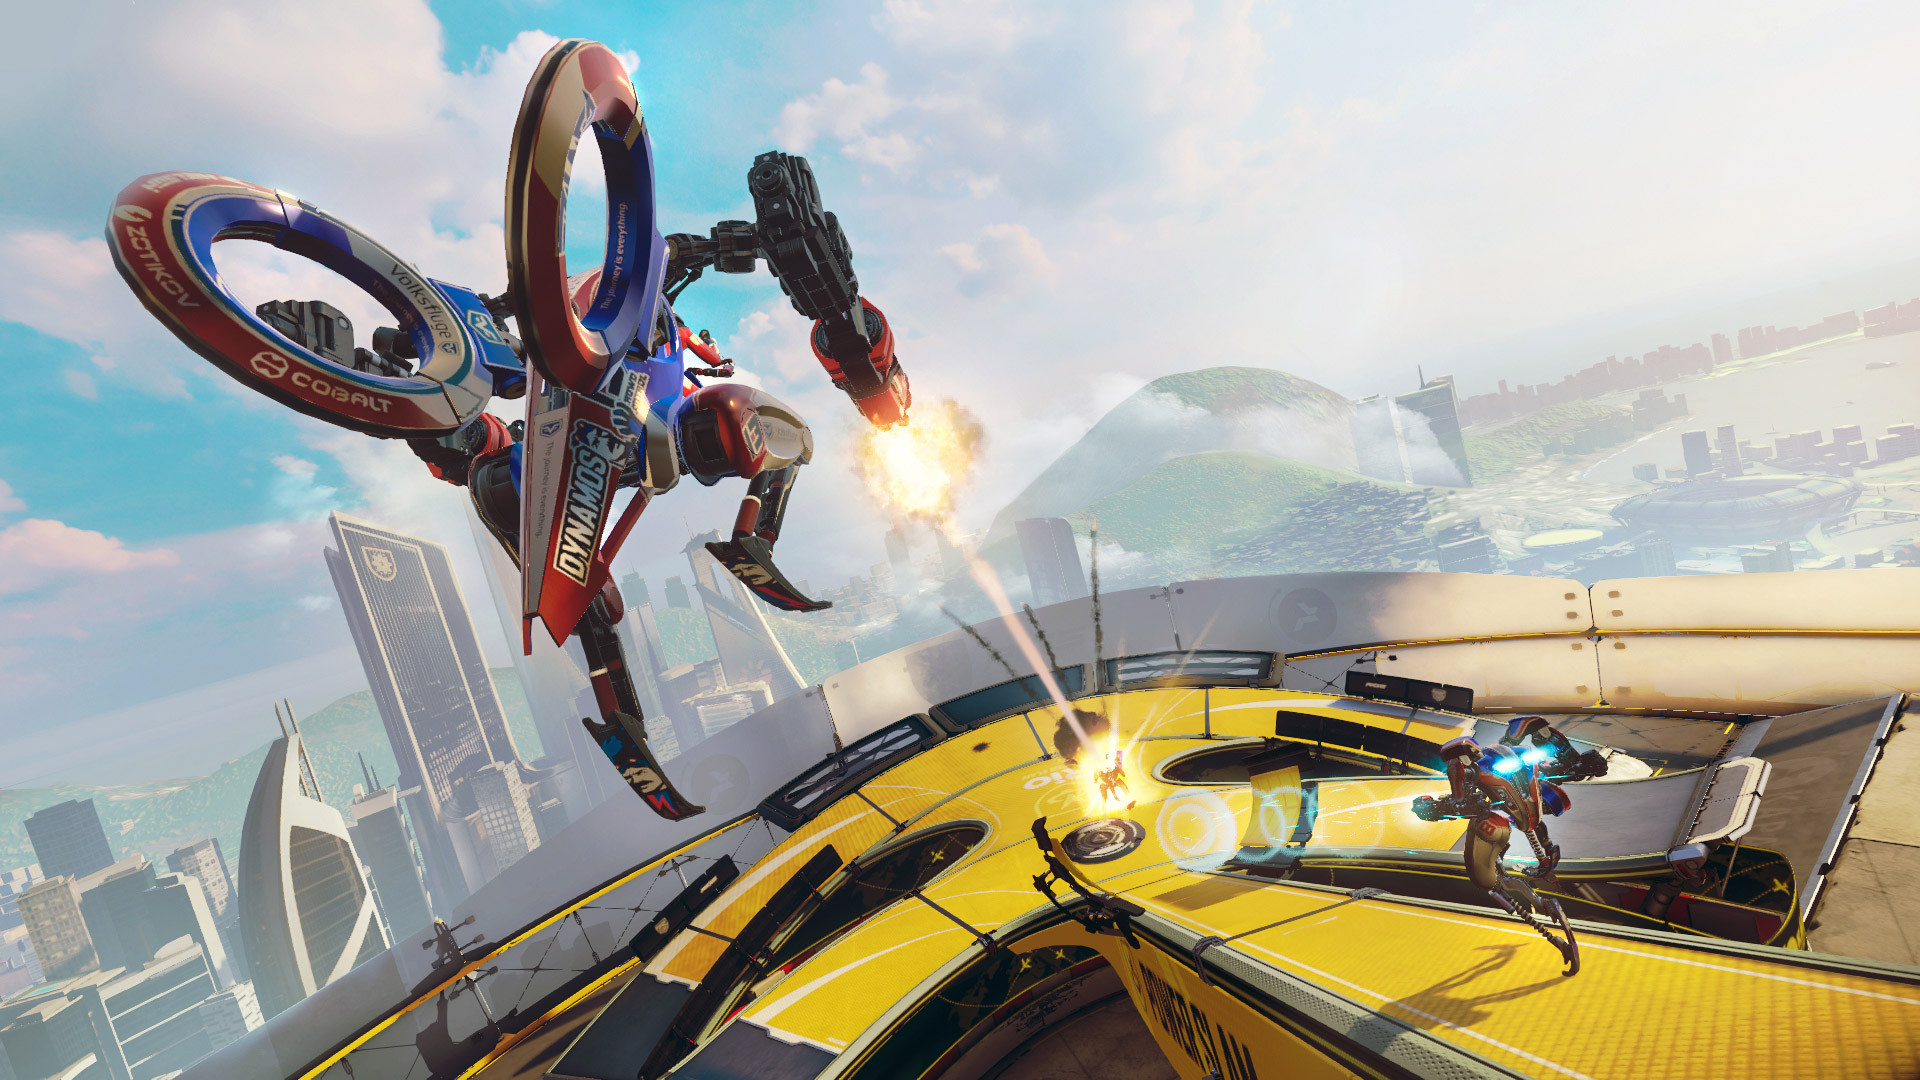 Sony Morpheus VR brings  3 vs. 4 Mech combat to life in Rigs.